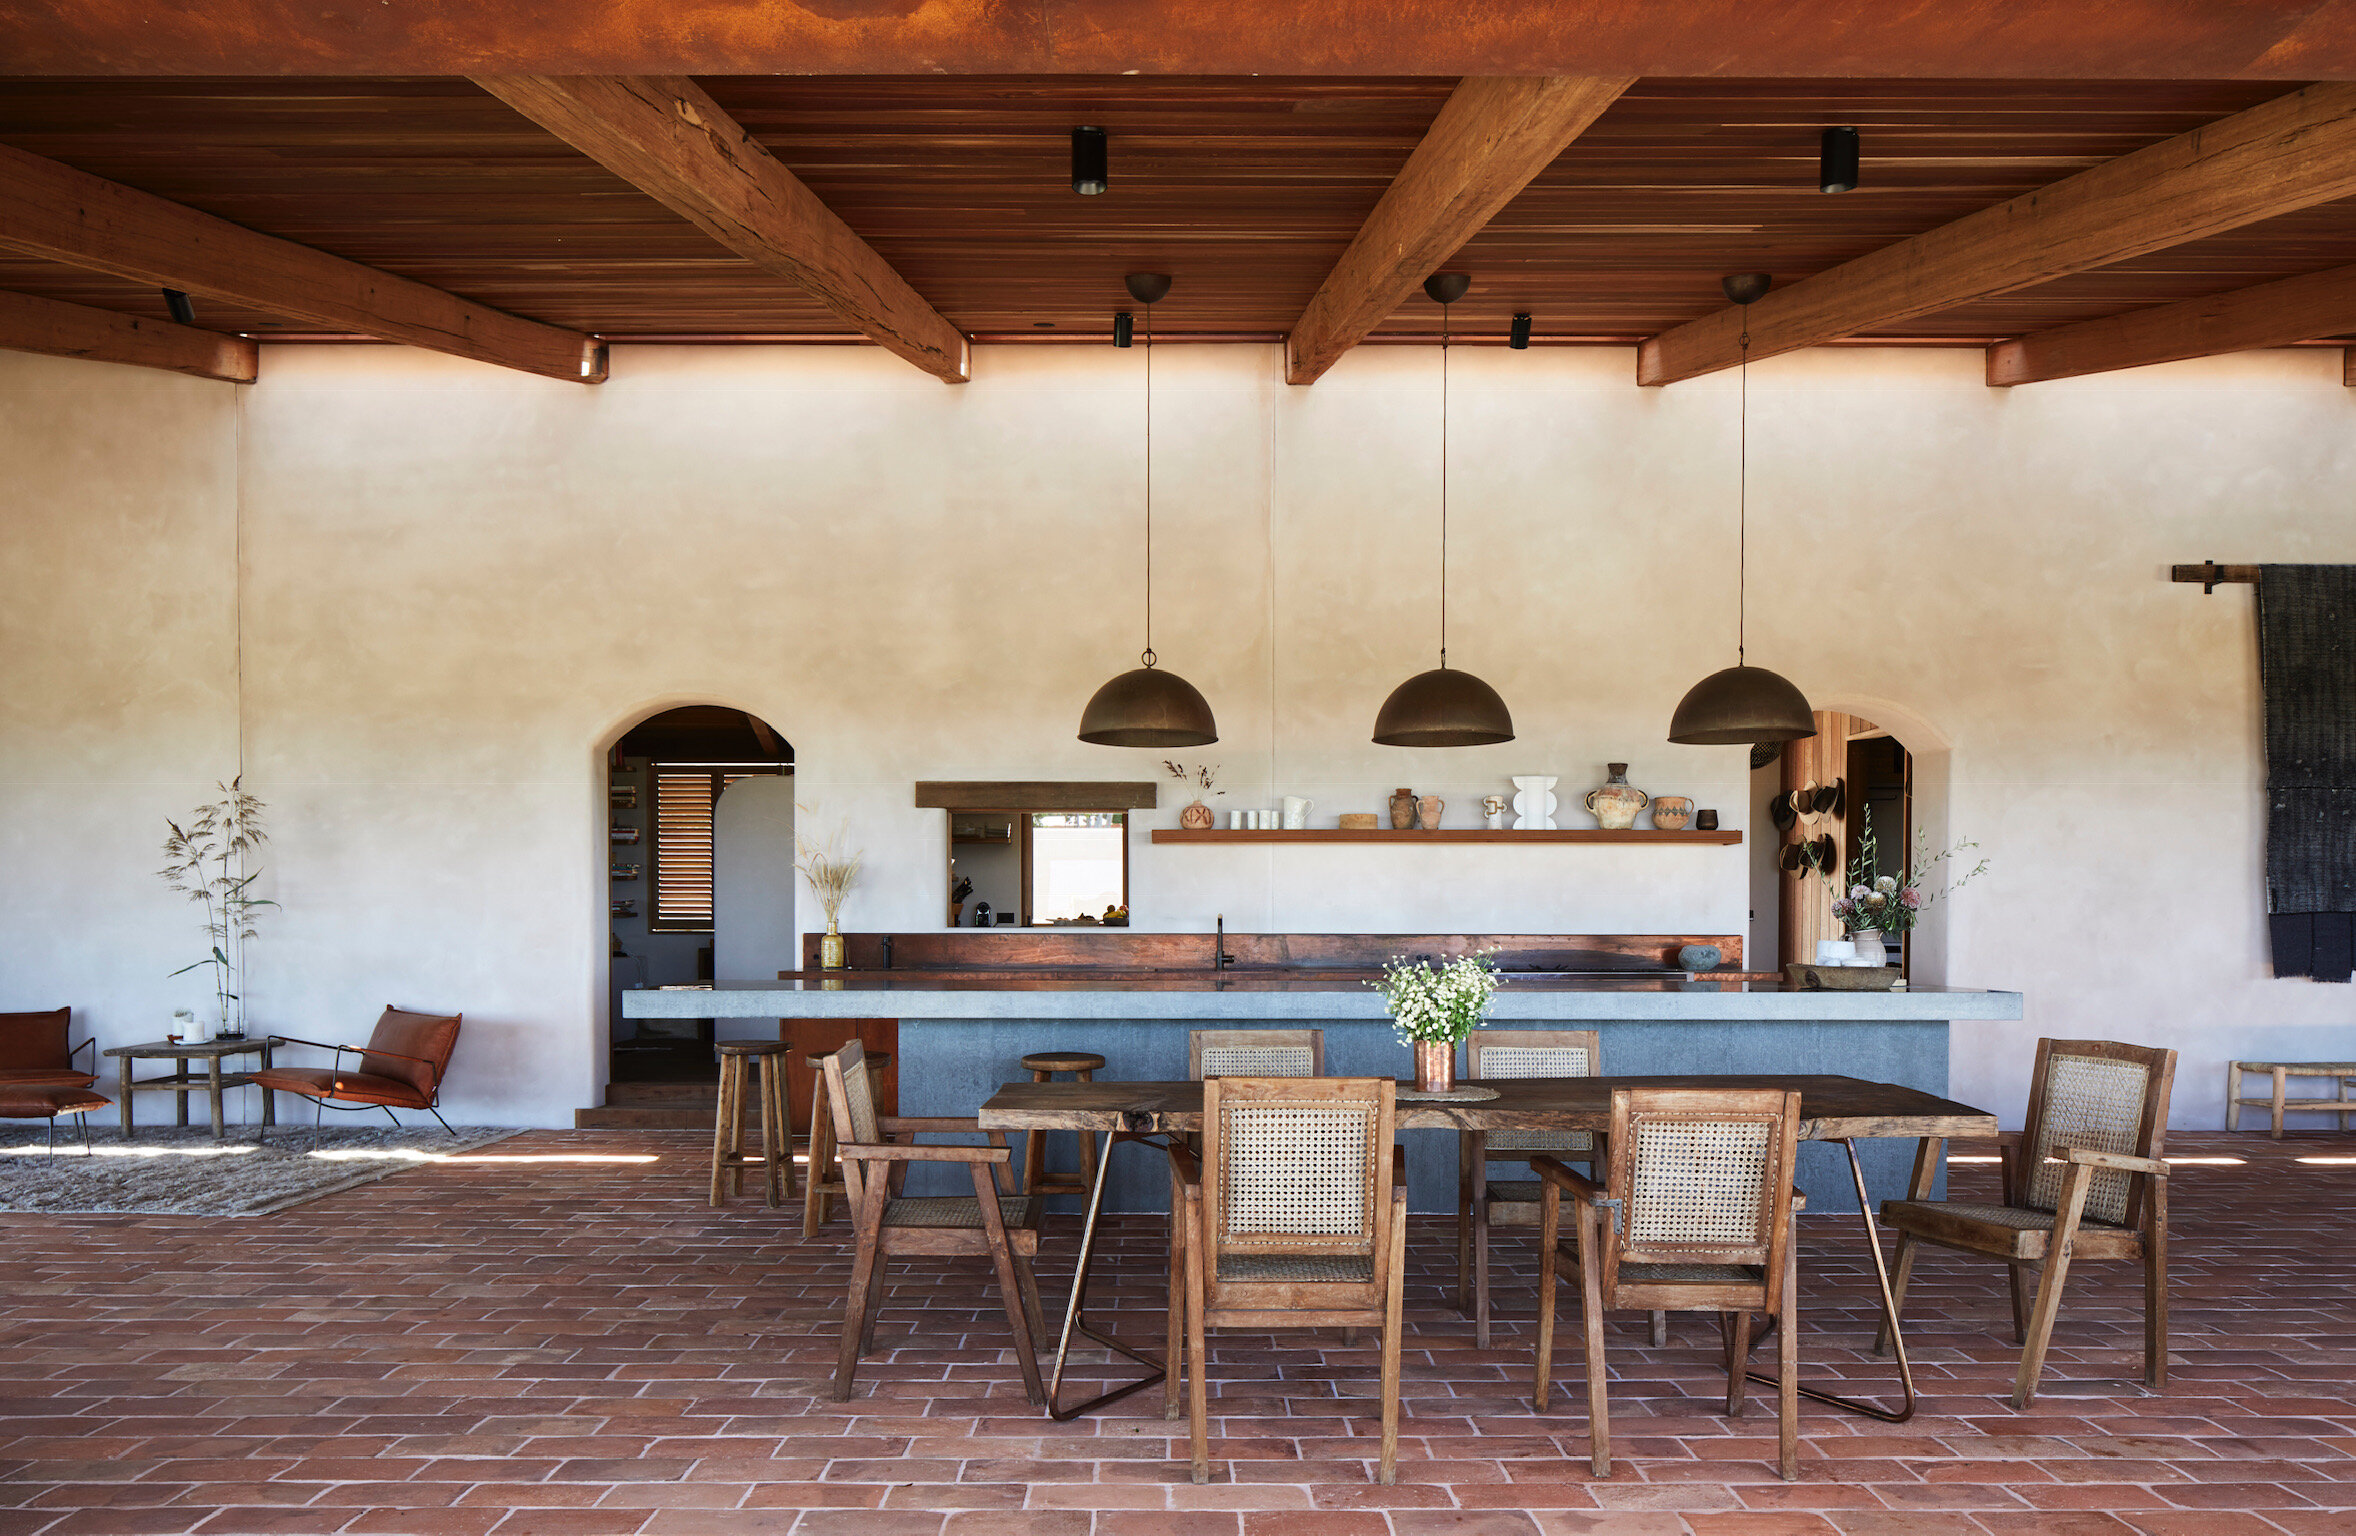 The terracotta tiles were sourced from a 300-year-old European casa, by Bryon brand,  Jatana Tiles . Photo - Alicia Taylor Photography.